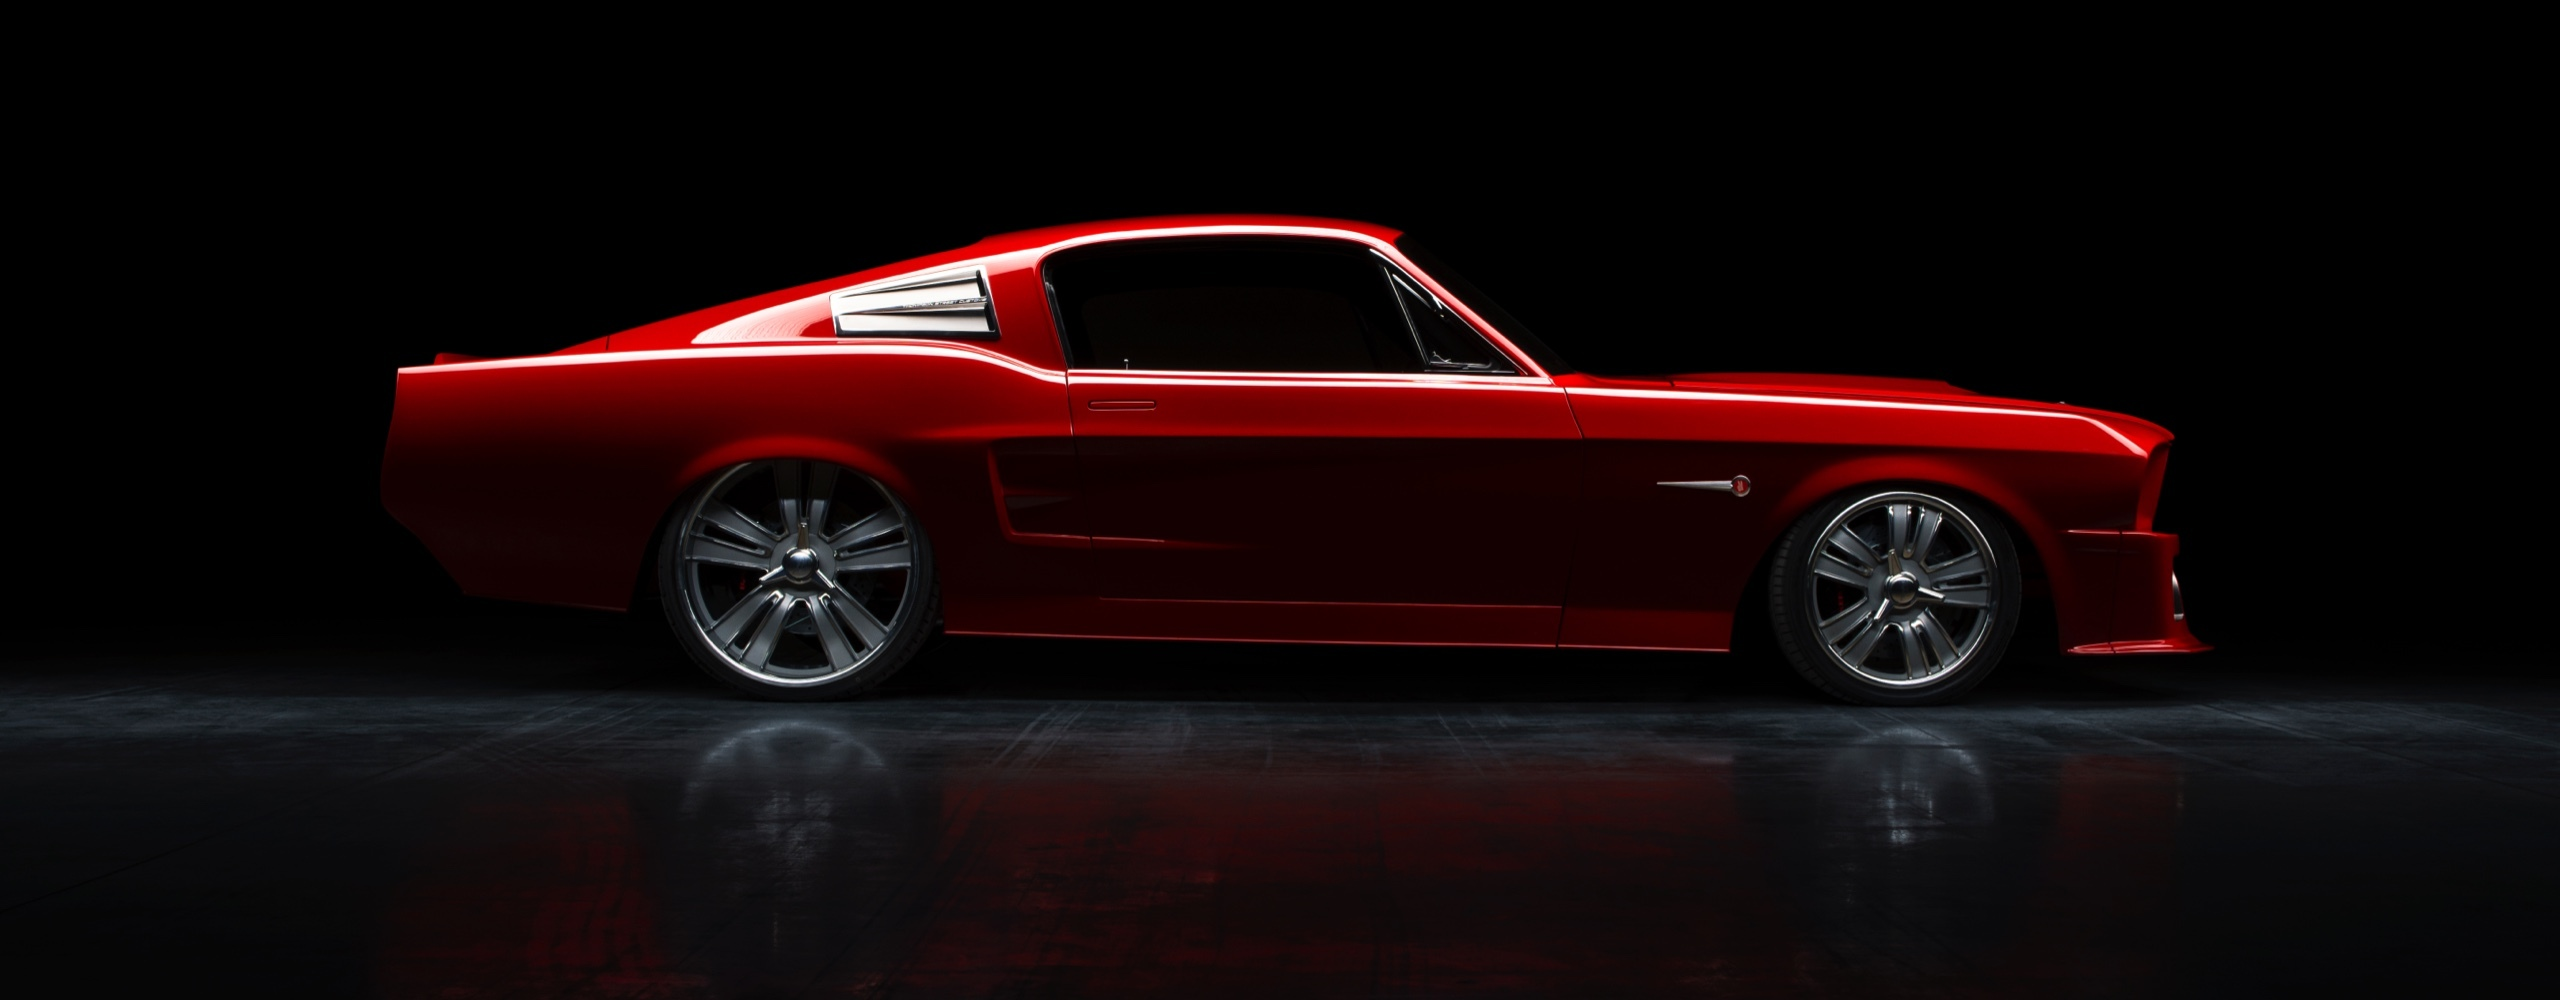 Kendall Motor Oil to debut 'The Kendall Custom' 1967 Mustang GT 500 Restomod